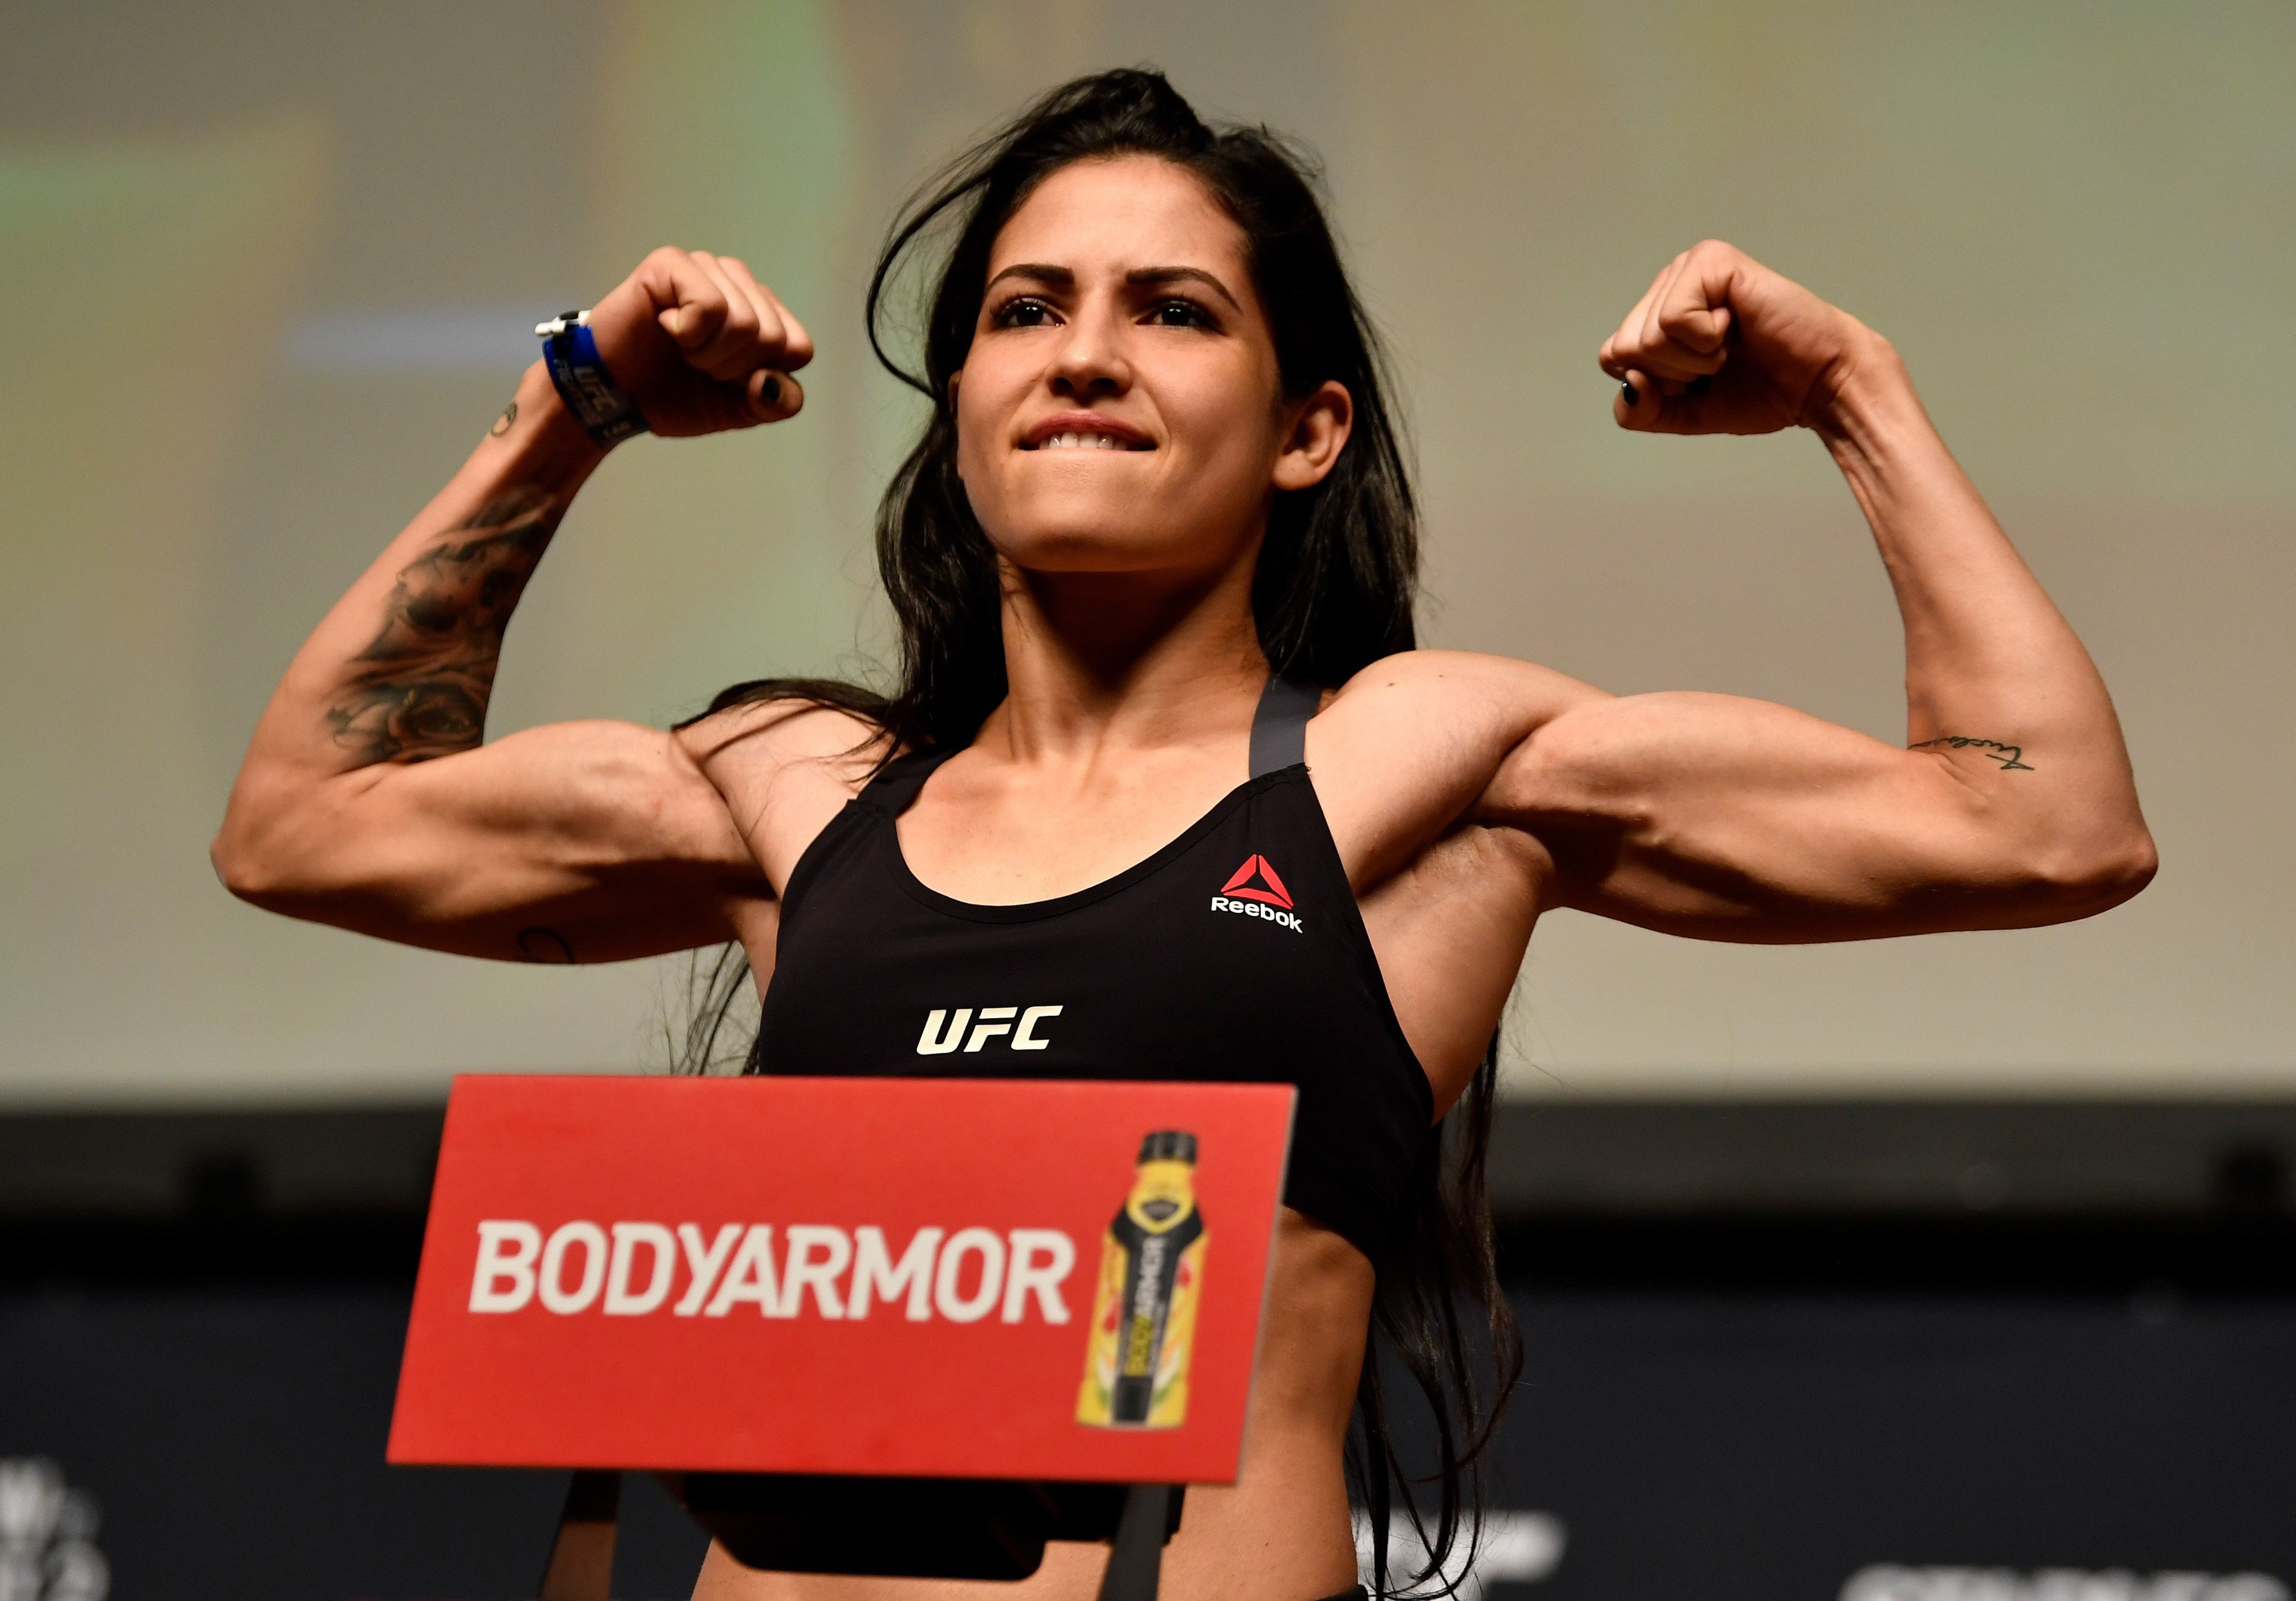 LOS ANGELES, CA - AUGUST 03:  Polyana Viana of Brazil poses on the scale during the UFC 227 weigh-in inside the Orpheum Theater on August 3, 2018 in Los Angeles, California. (Photo by Jeff Bottari/Zuffa LLC/Zuffa LLC via Getty Images)